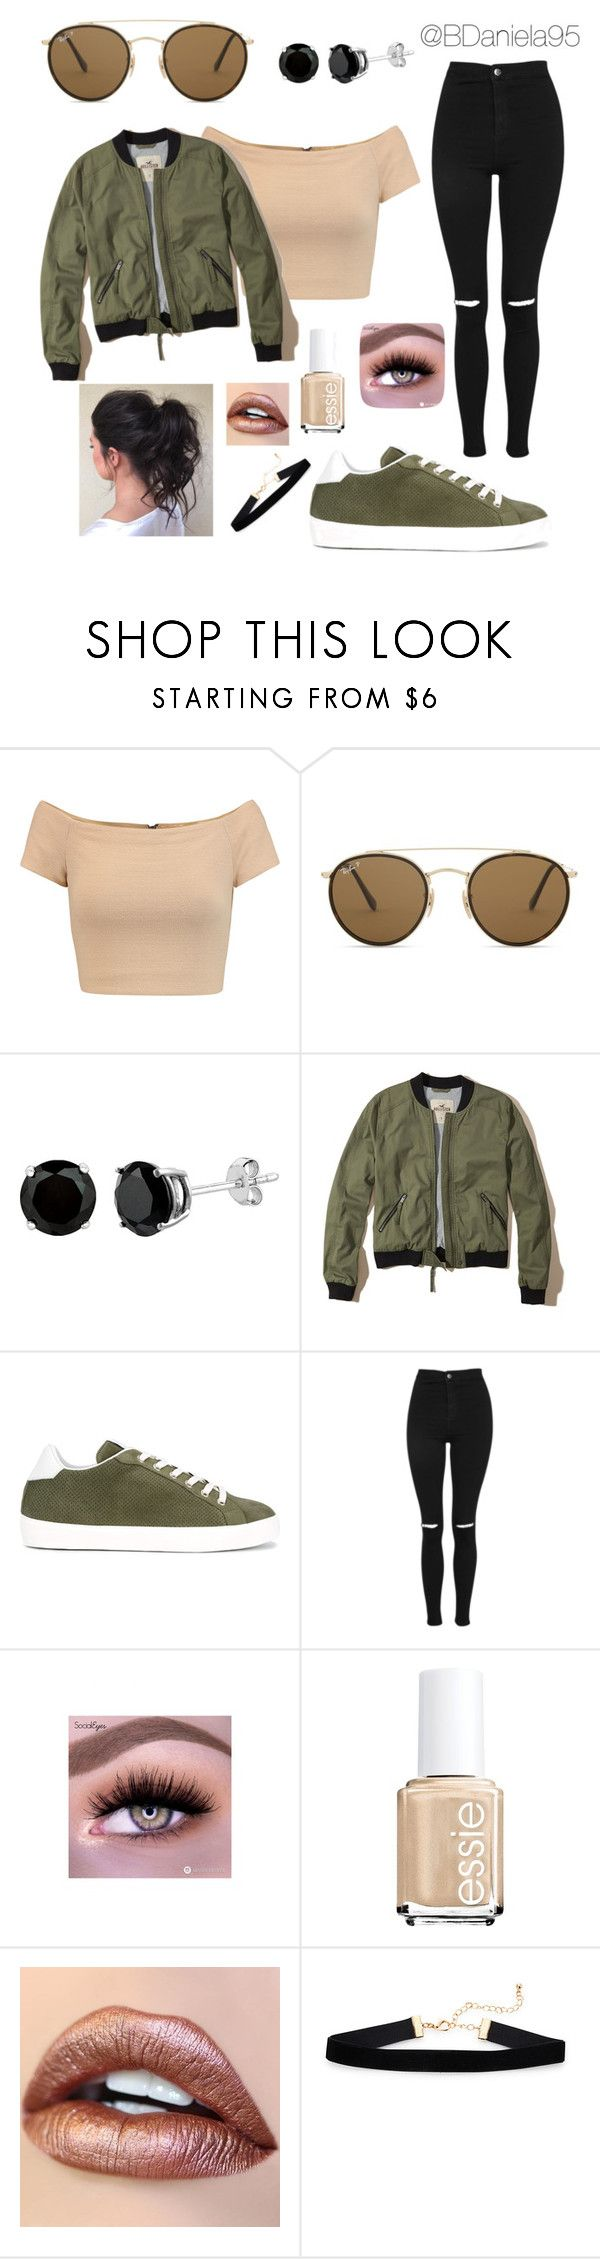 """Untitled #263"" by daniela95140 on Polyvore featuring Alice + Olivia, Ray-Ban, Hollister Co., LEATHER CROWN and Topshop"